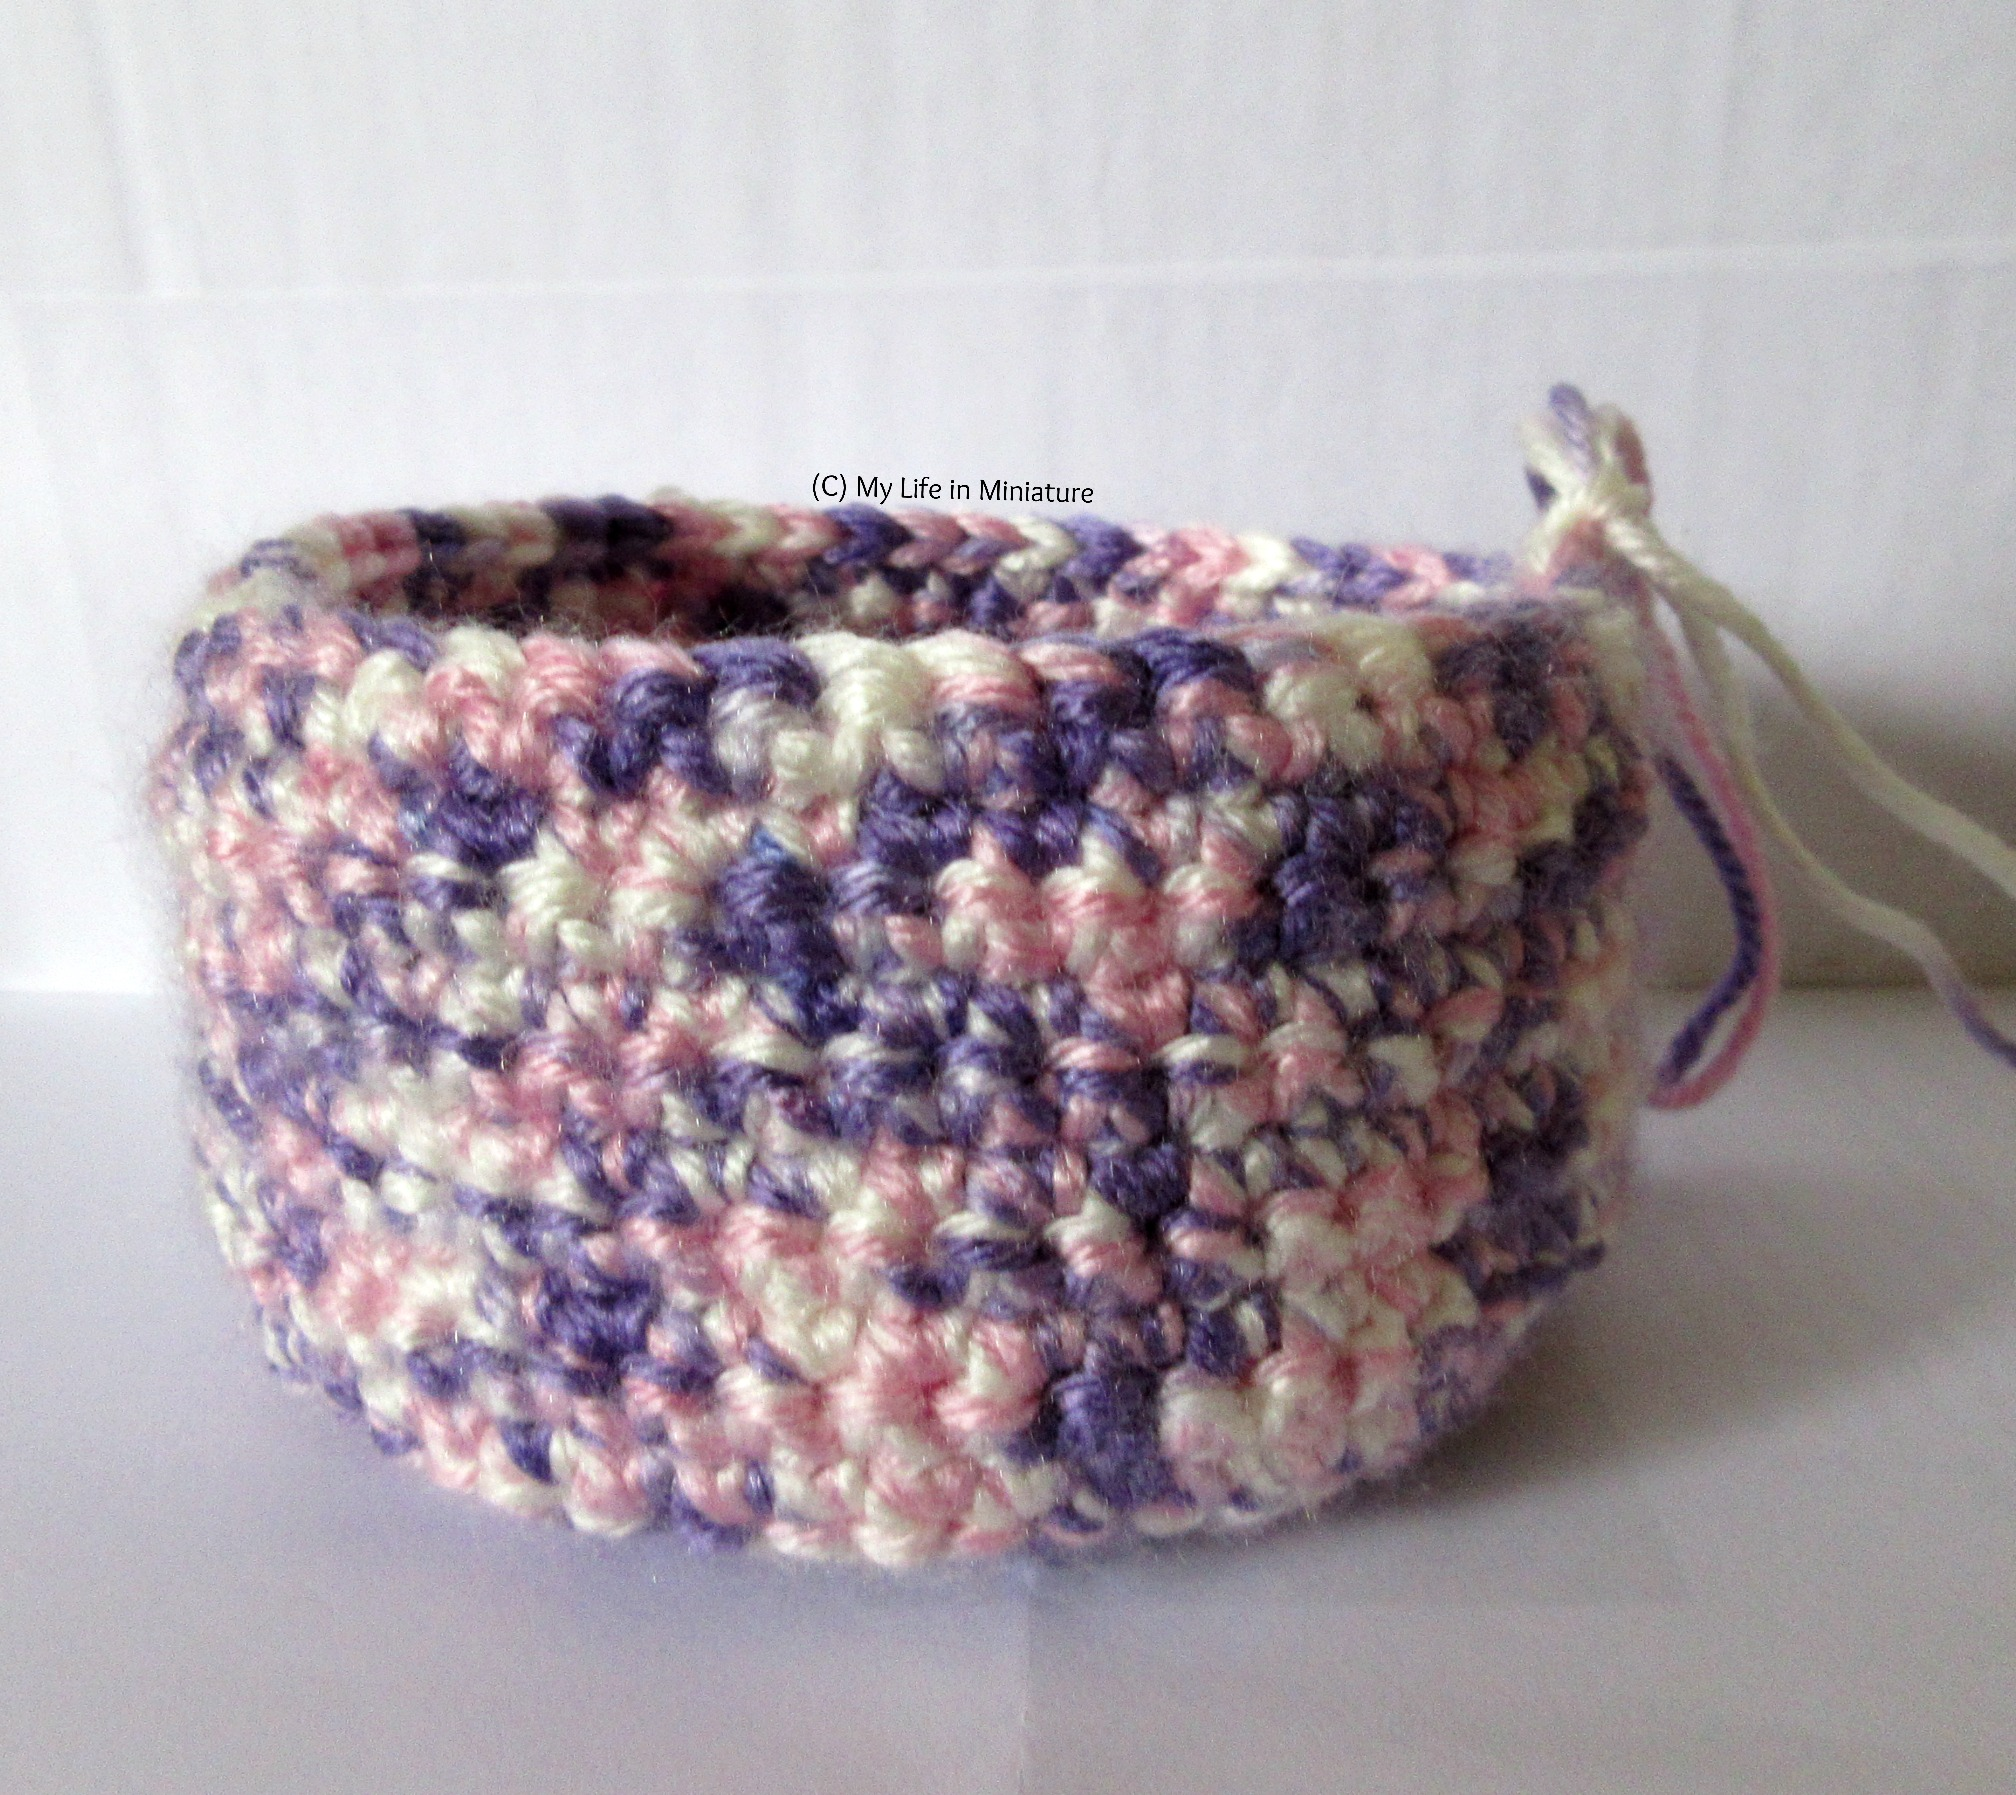 The pink, purple, and white crocheted nest has quite tall sides now, about 10 rounds. It's against a white background.